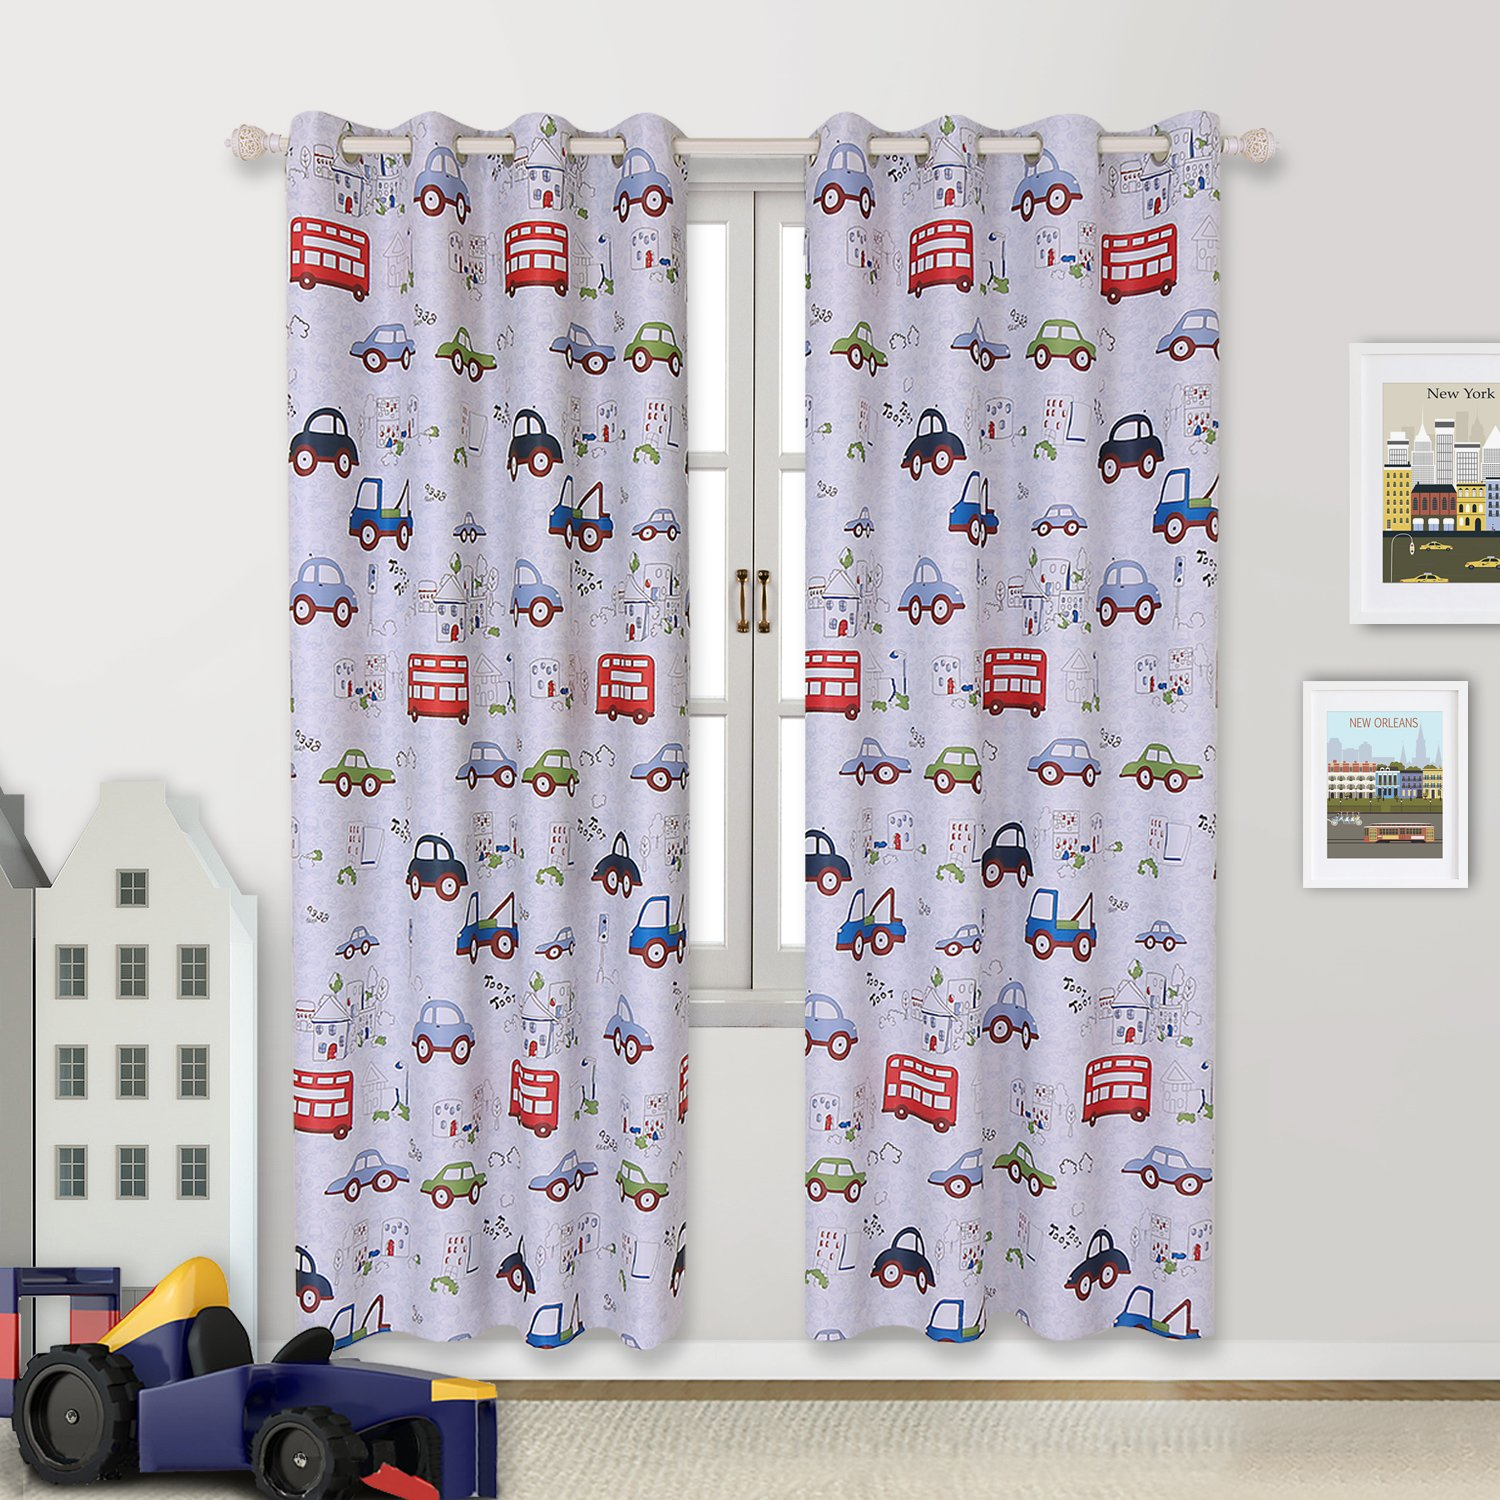 BGment Room Darkening Kids Curtains for Bedroom –Cartoon Car Printed Window Drapes, Metal Grommets Top, 52'' Wx84 L Each Panel, 2 Panels